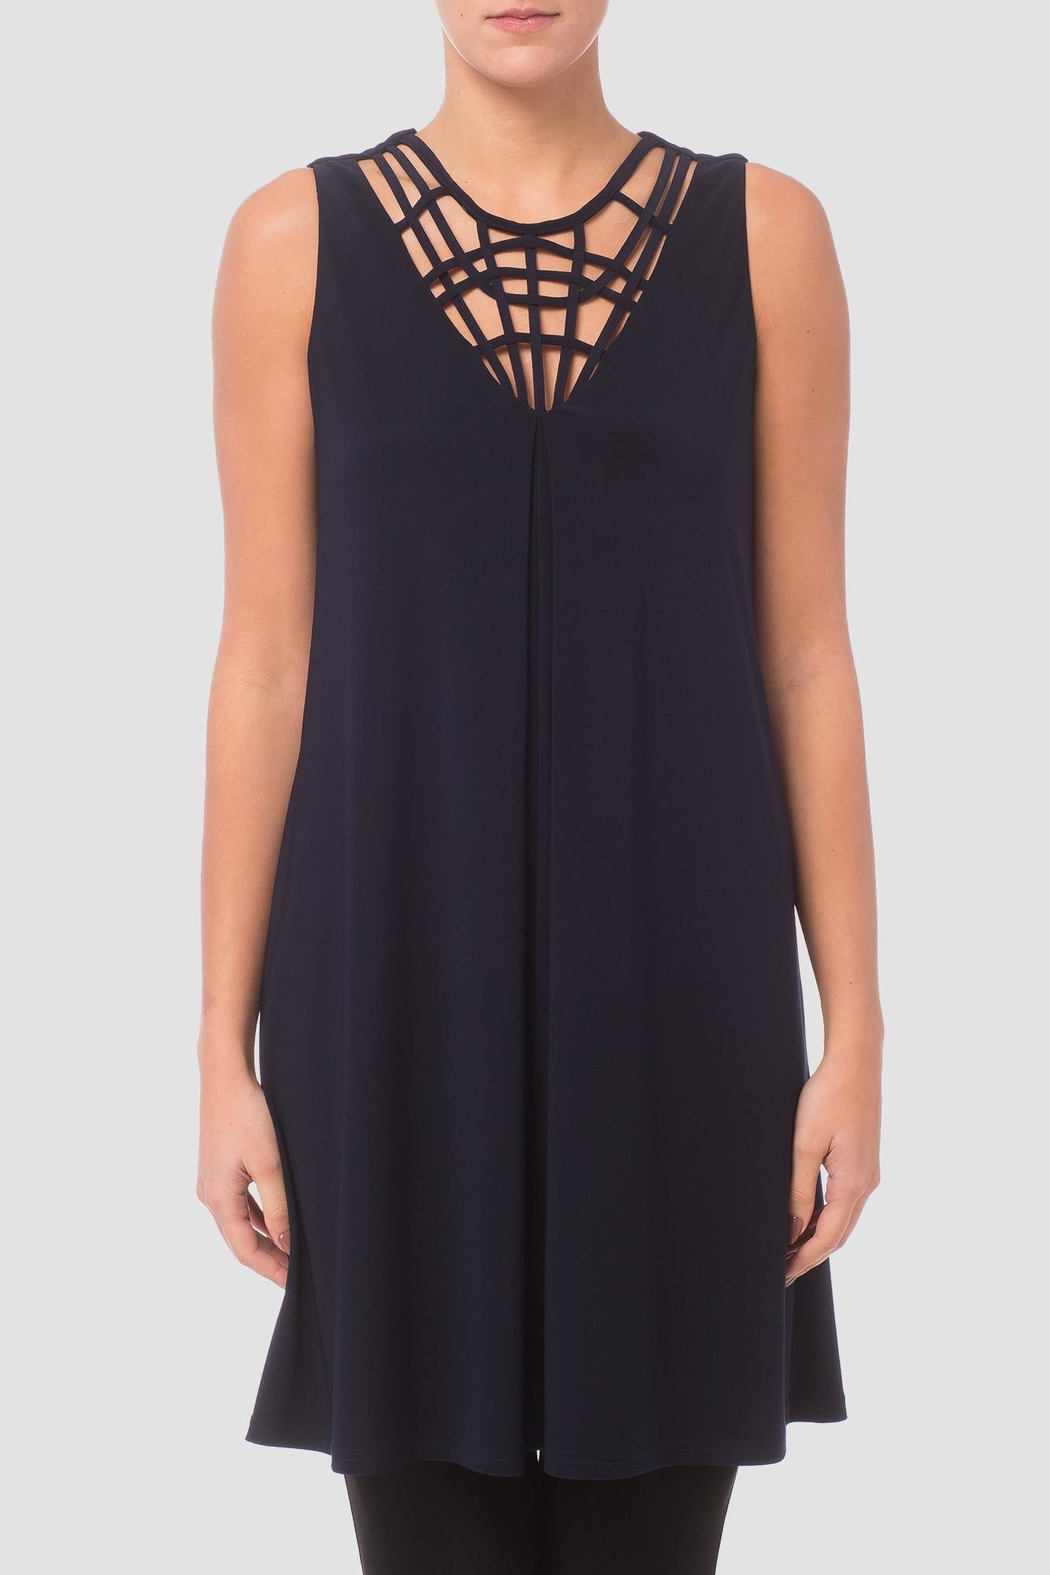 Joseph Ribkoff Black Tunic/dress - Main Image